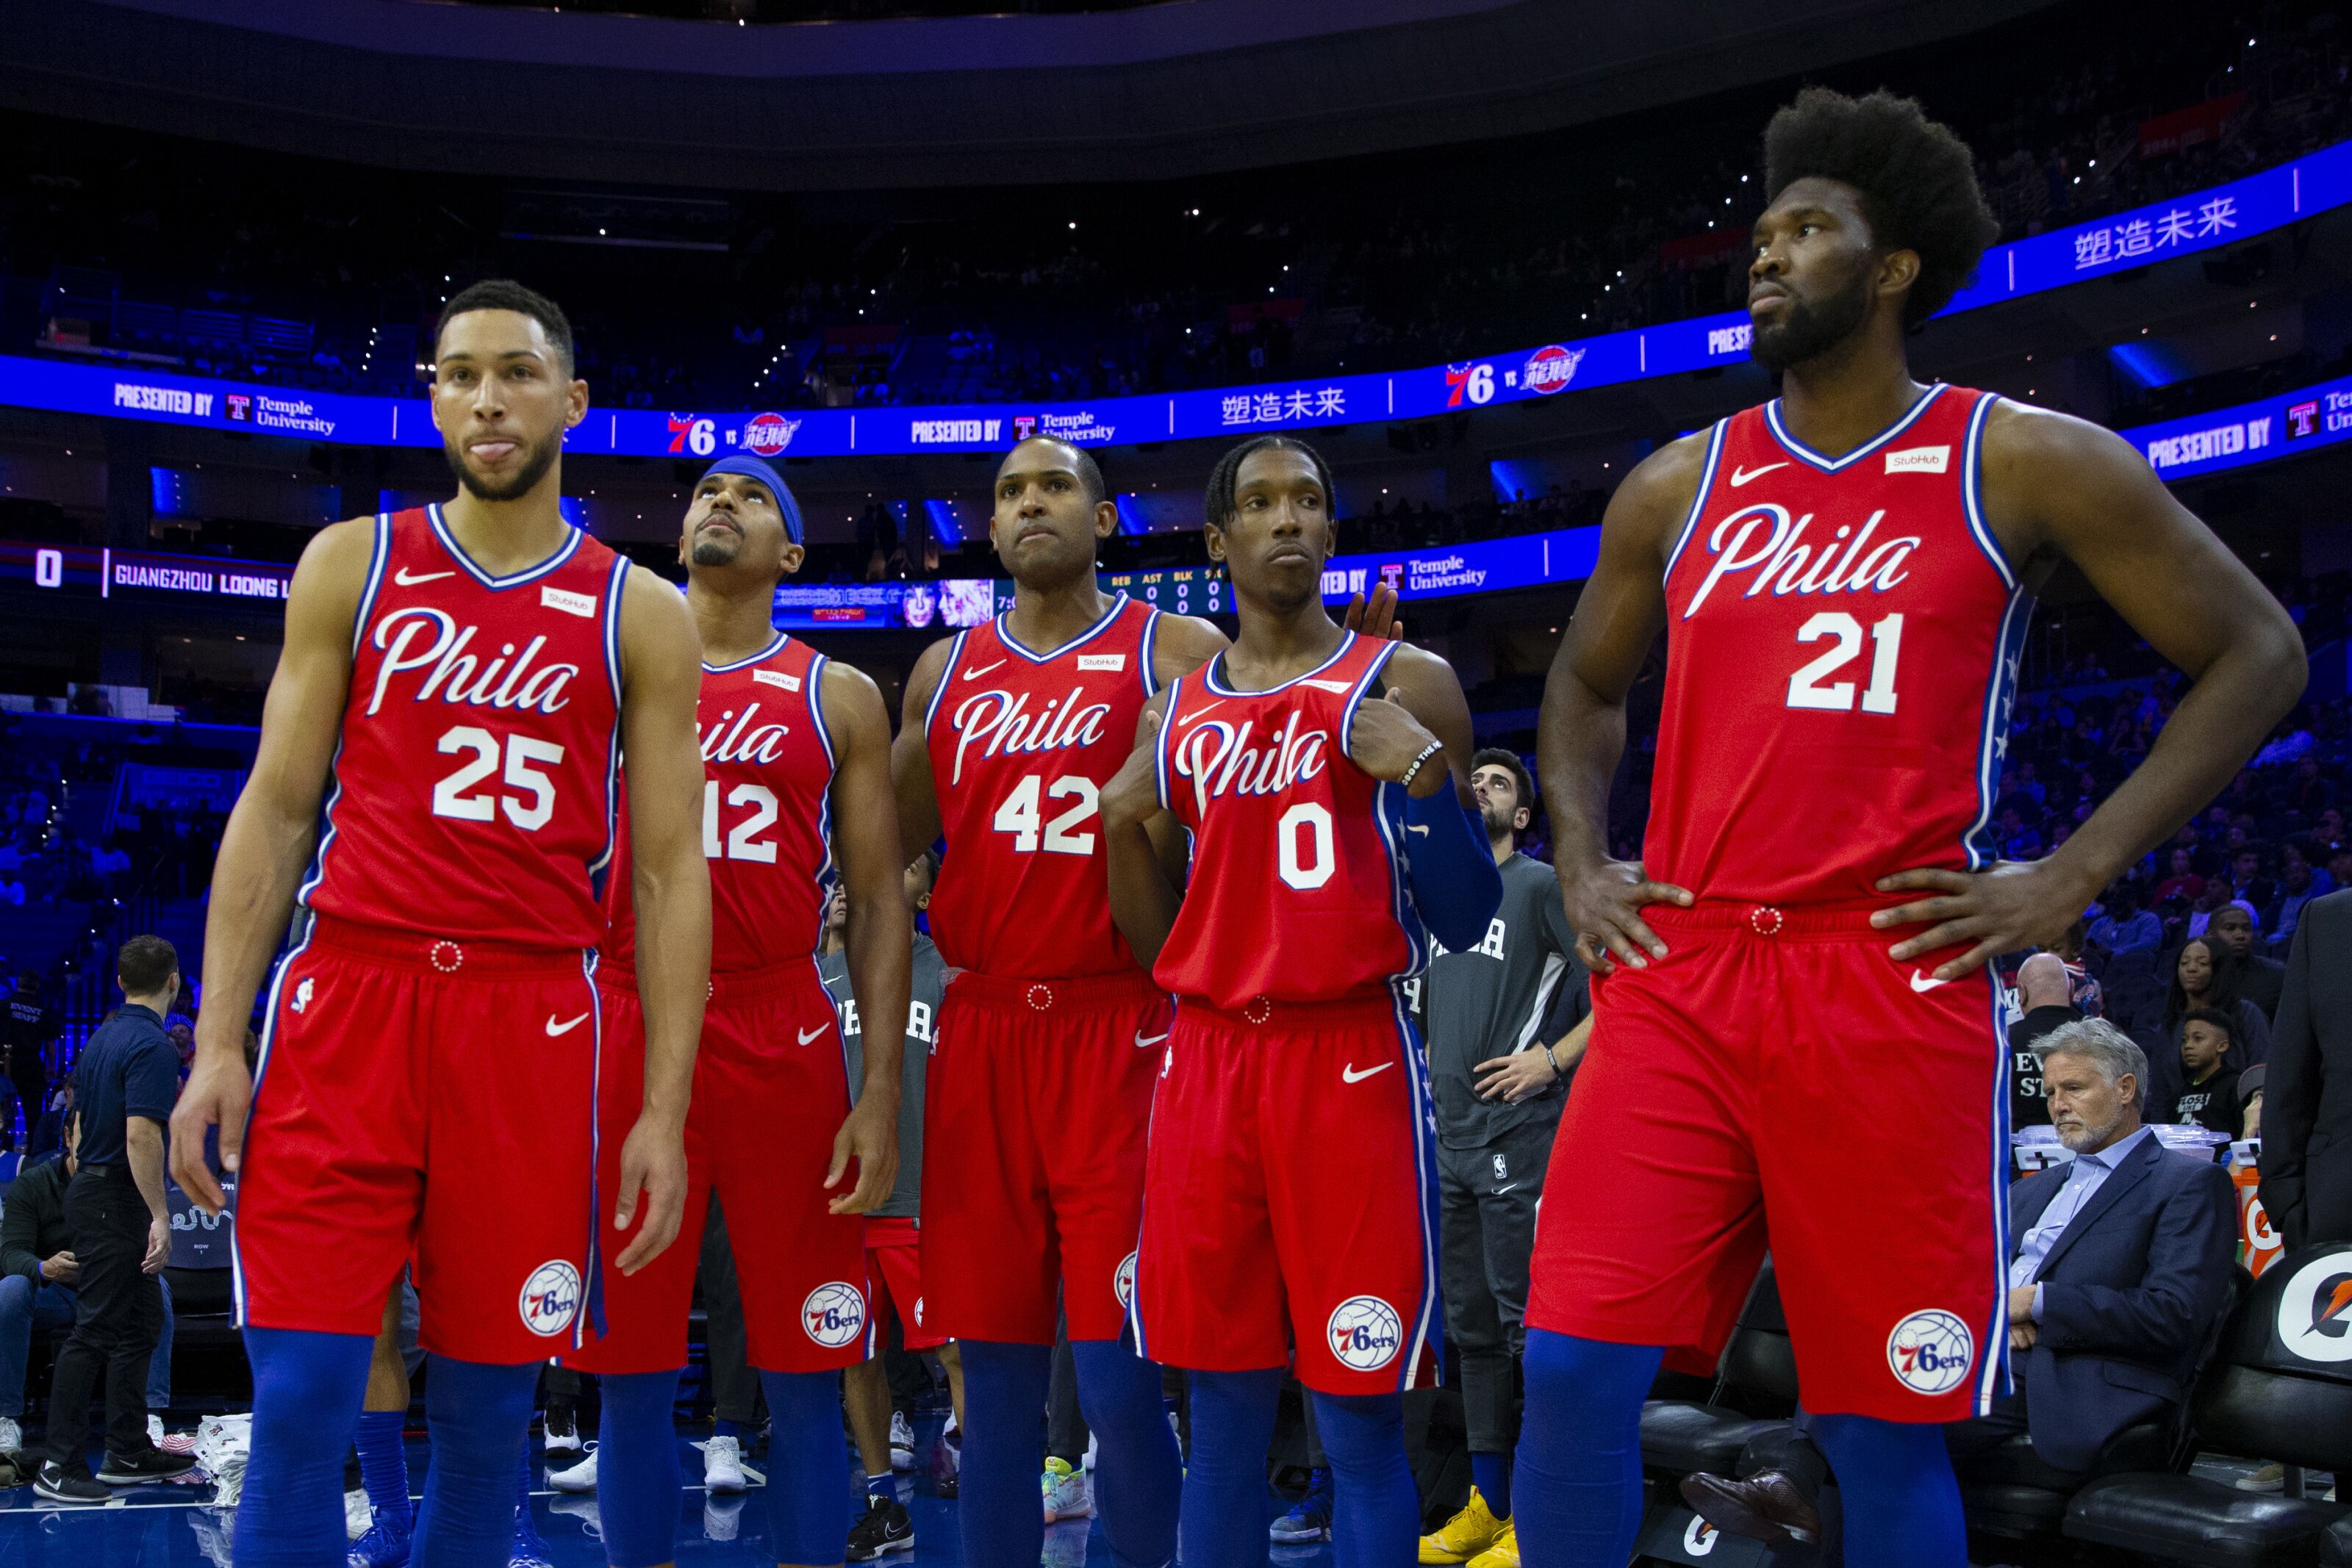 Go big or go home: 76ers pursue title dreams by bucking small-ball trend